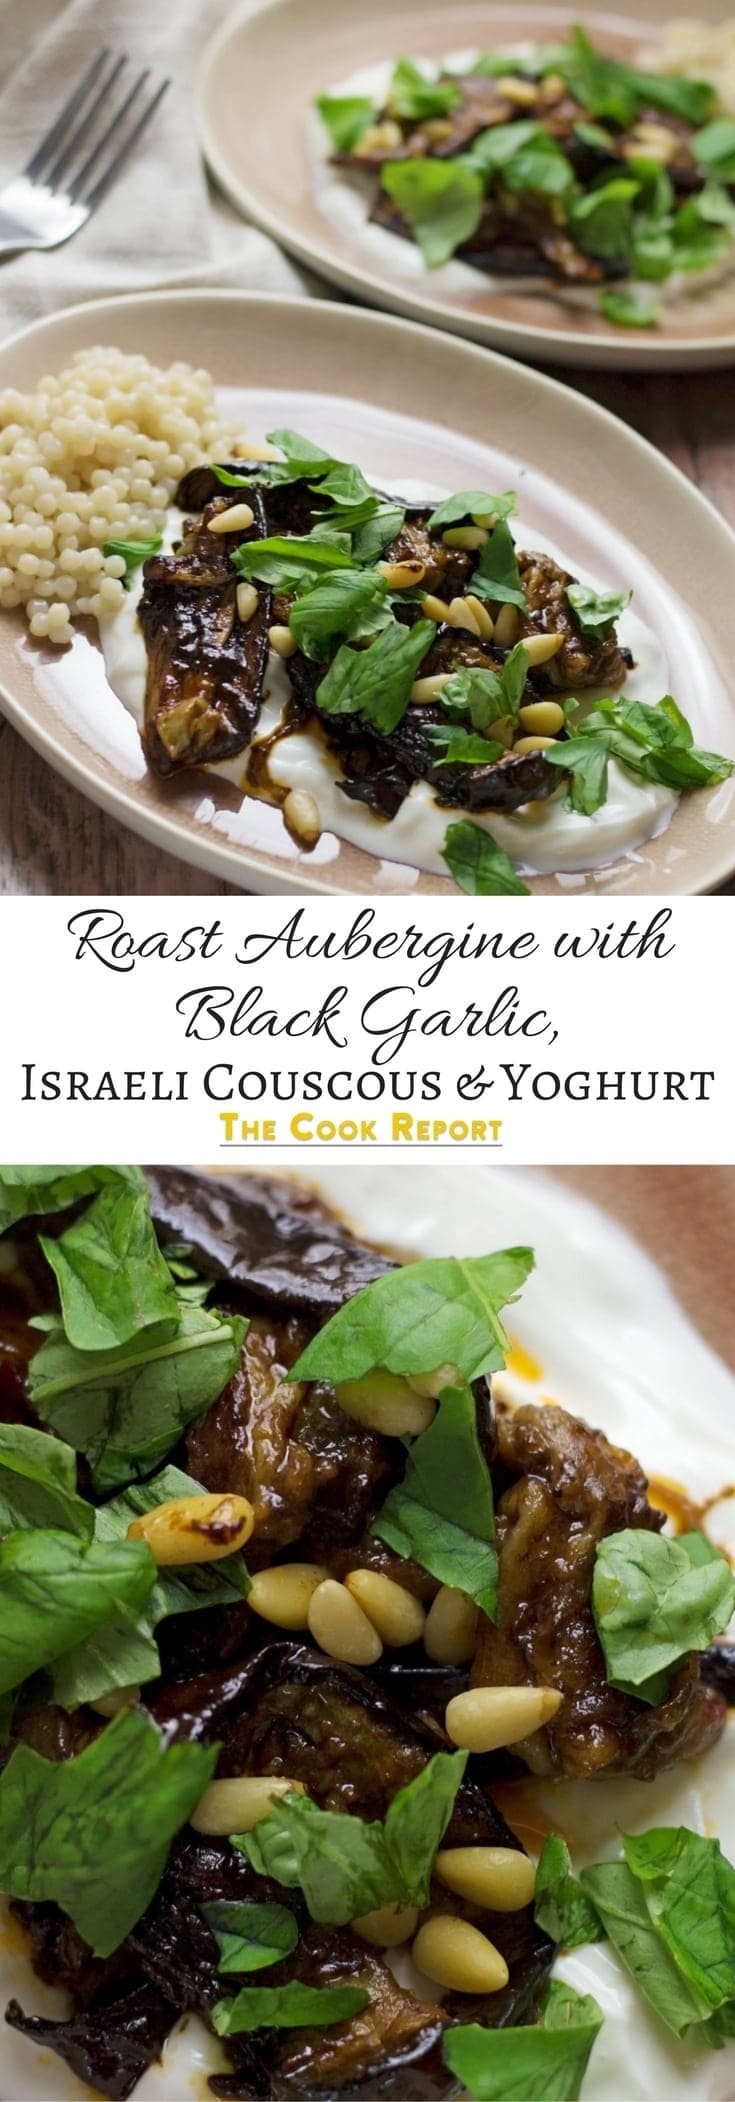 This roast aubergine gets a rich balsamic flavour from the black garlic cooled down by a bed of Greek yoghurt. Serve with Israeli couscous.